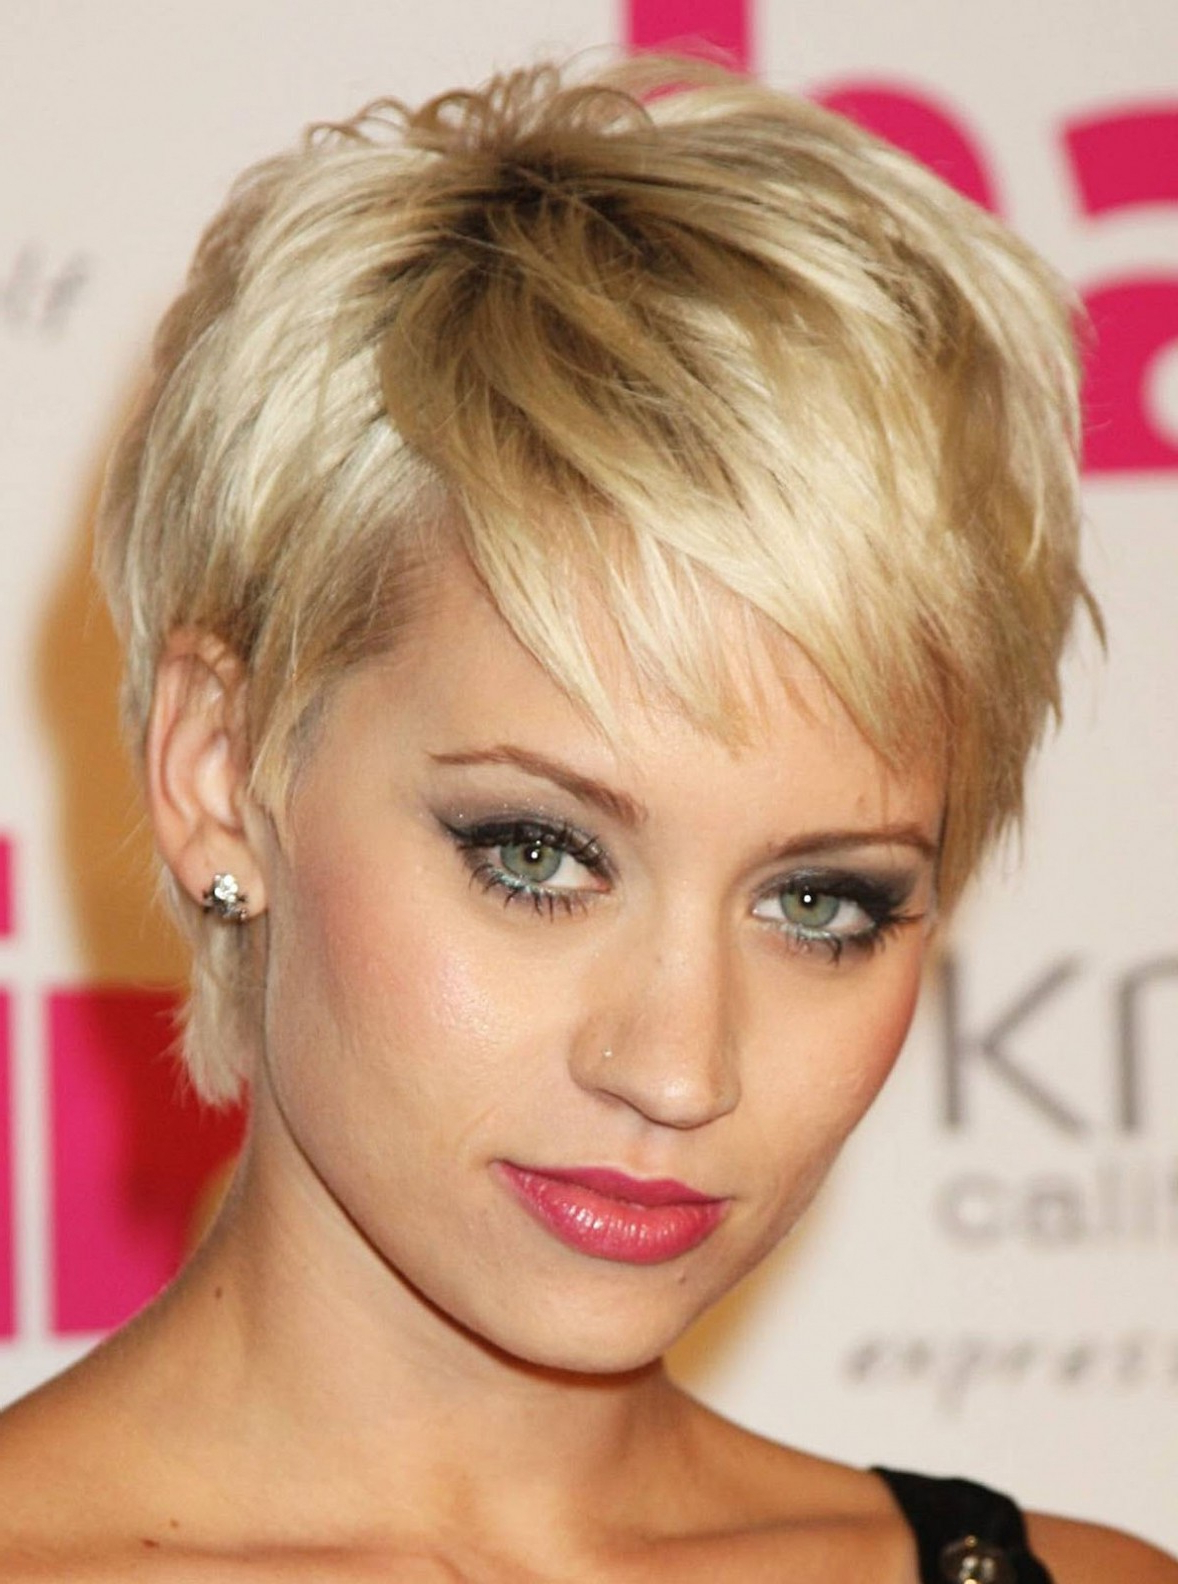 Short Hairstyles To Make You Look Younger Unique Hairstyles Top 5 In Short Haircuts That Make You Look Younger (View 5 of 25)